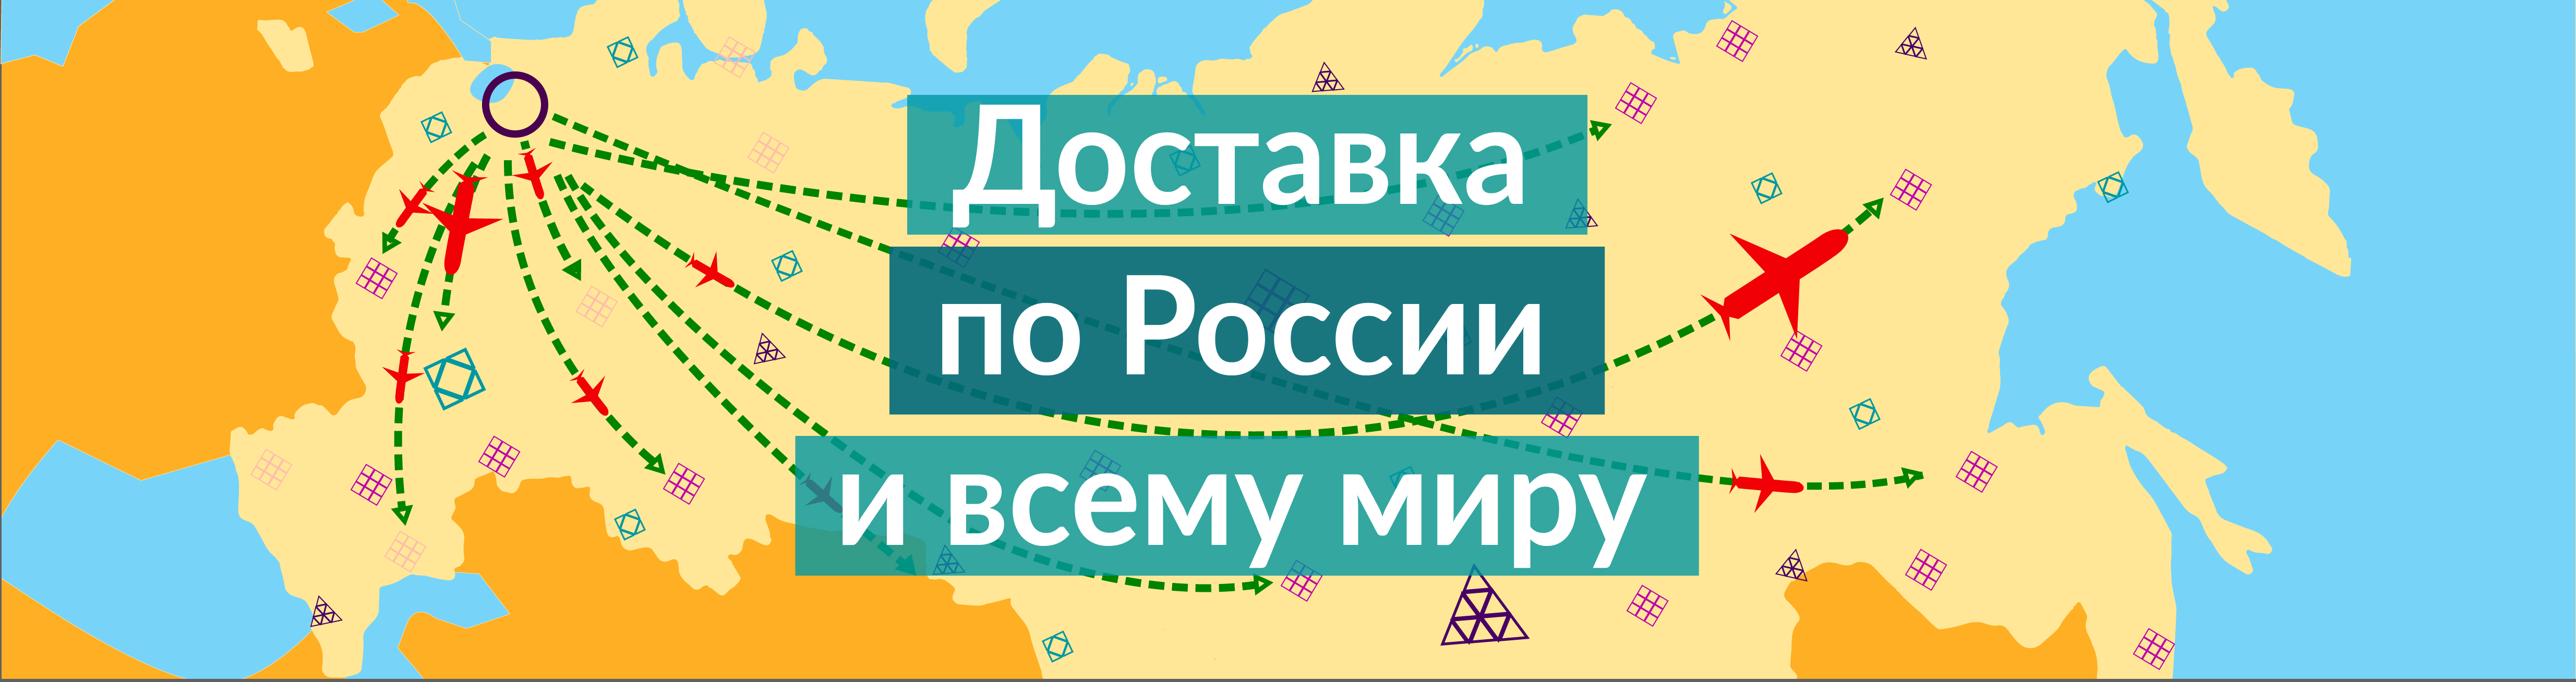 О доставке (About Delivery)